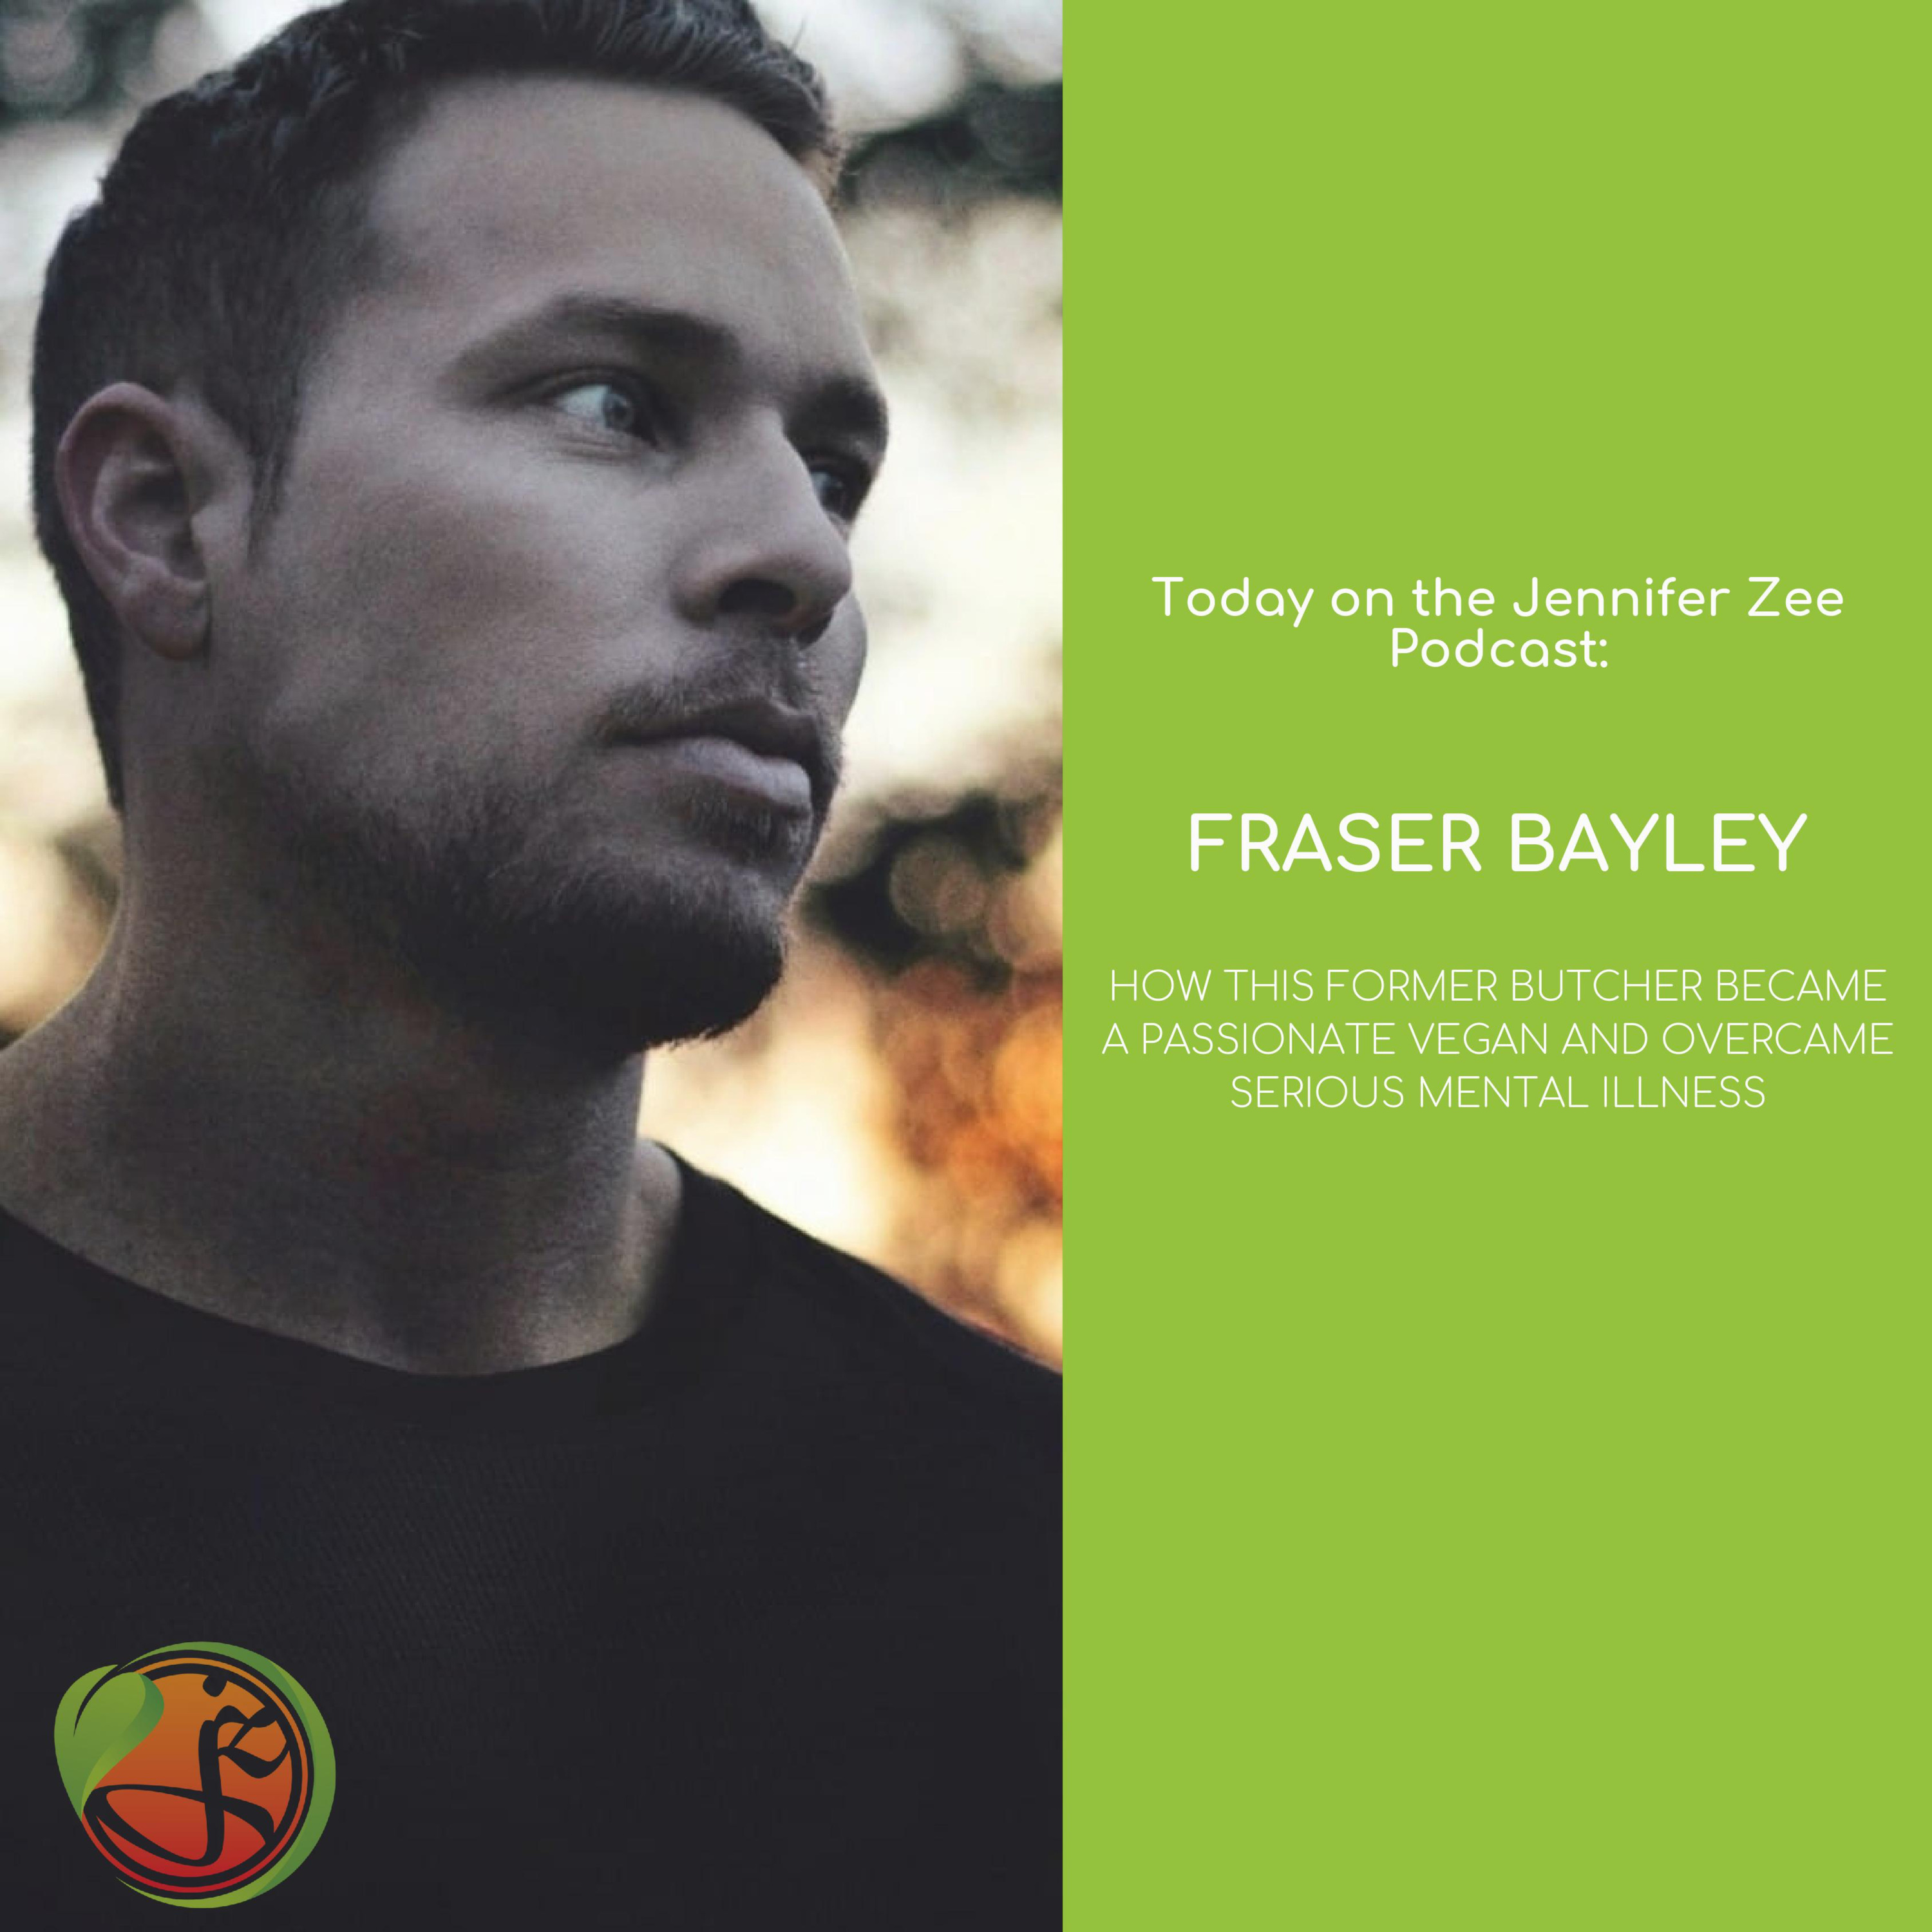 From a Mentally Ill Butcher to a Passionate Vegan - The Complete Lifestyle Transformation of Fraser Bayley